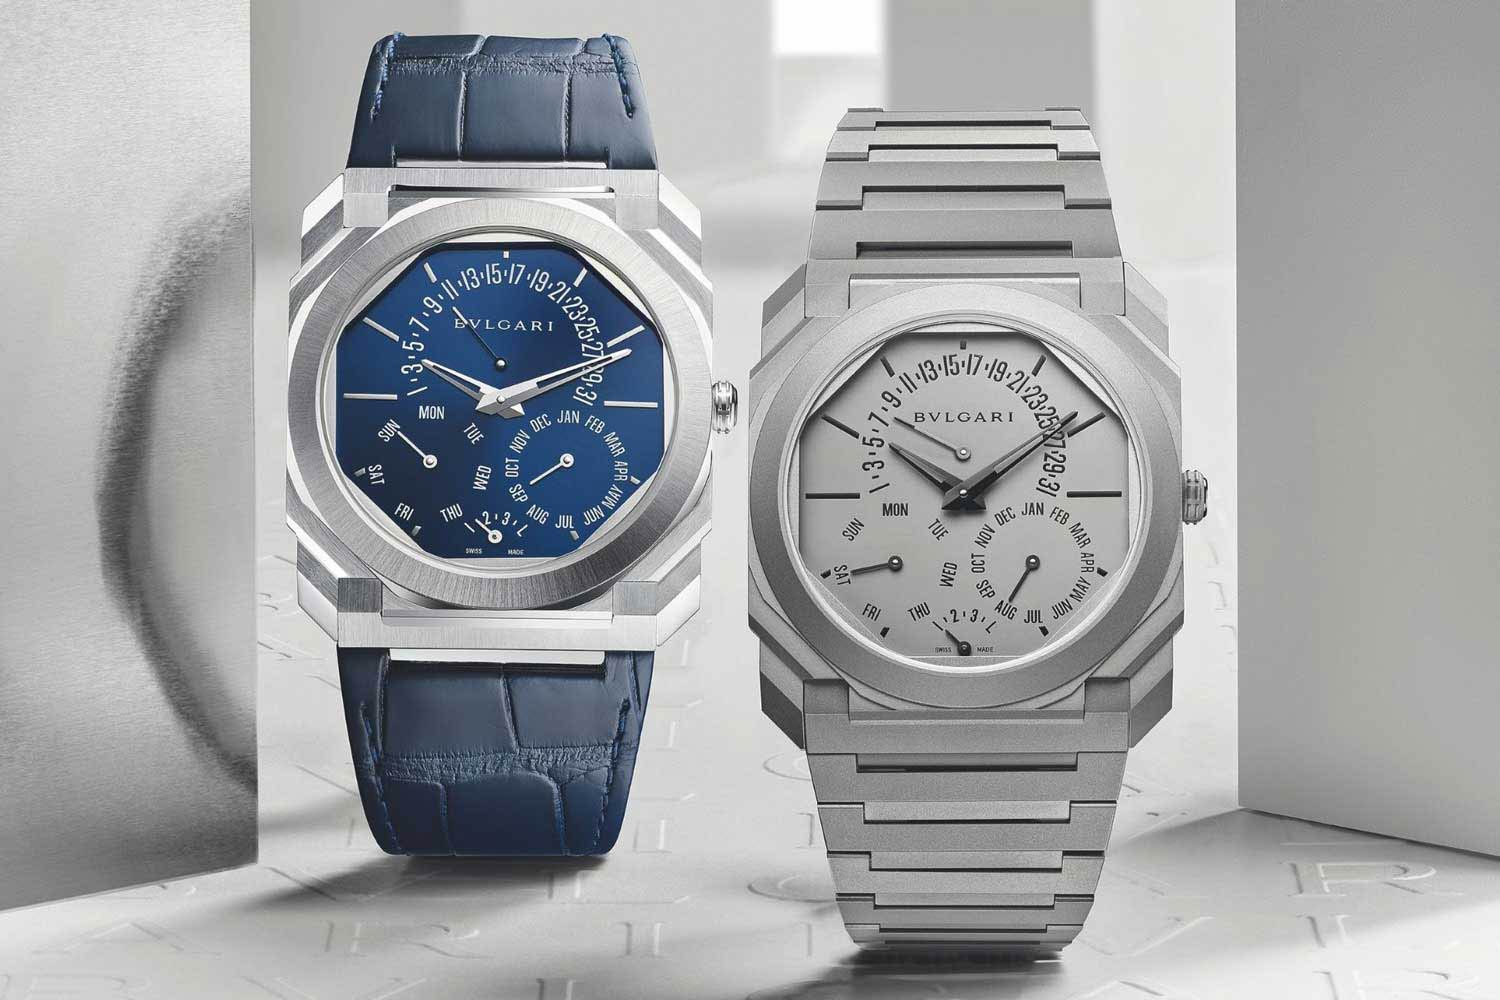 Launched this year, Bvlgari's Octo Finissimo Perpetual Calendar is the world's slimmest automatic watch with perpetual calendar function.